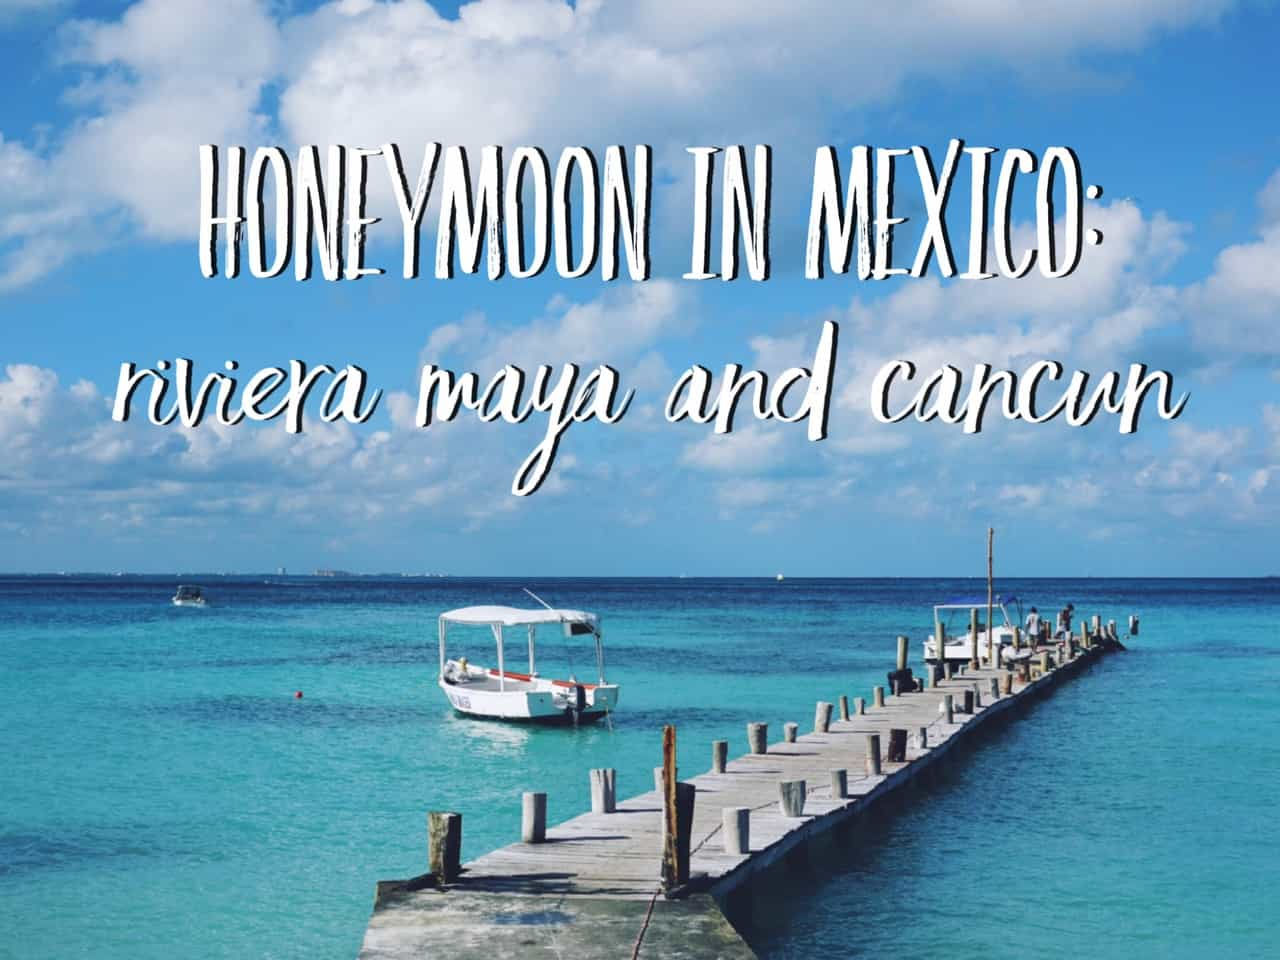 We have some lovely news for you: we got married! The wedding took place in Mexico on the 29th of December and later we went to celebrate our honeymoon in Mexico: in Riviera Maya and Cancun.